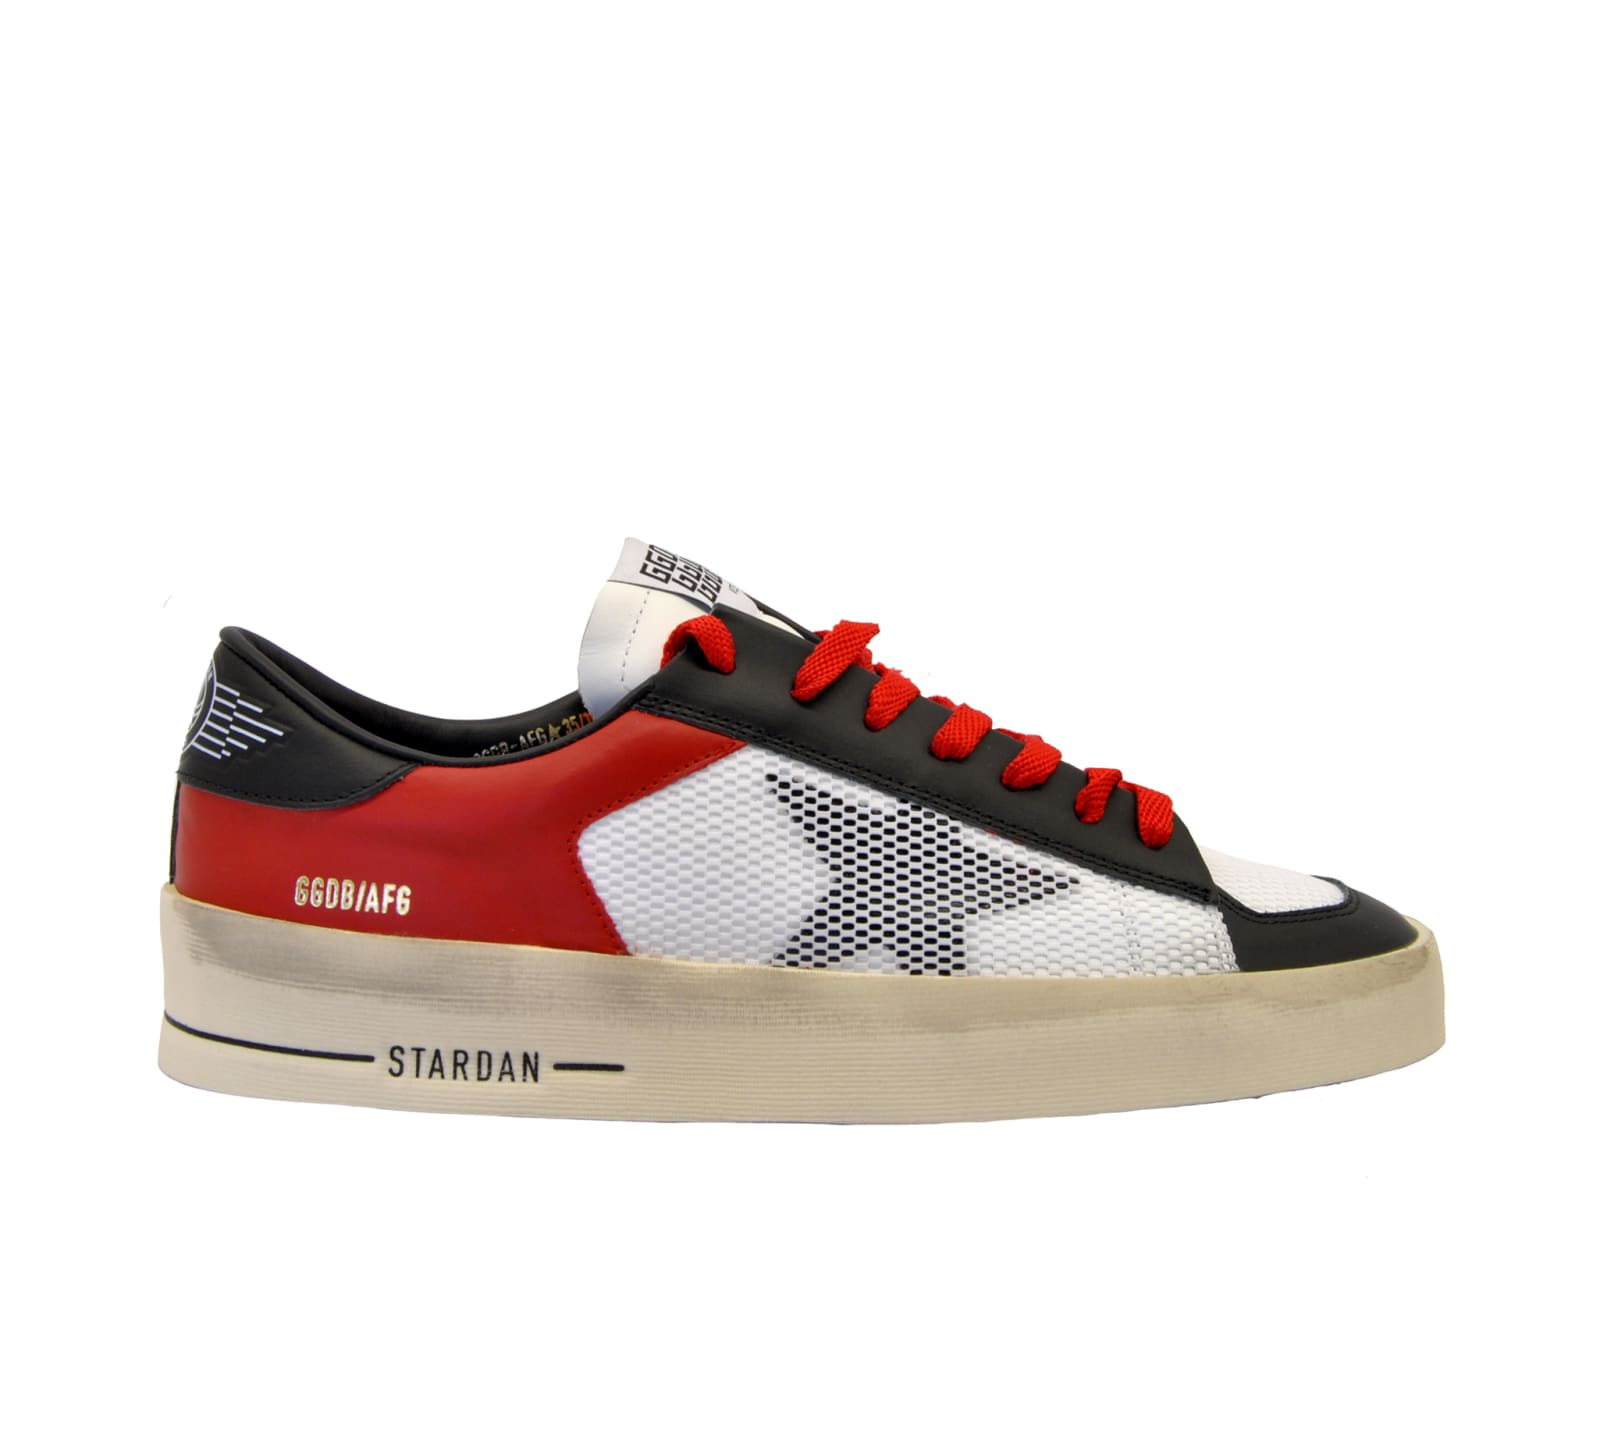 outlet store a79d8 fc652 Golden Goose Sneakers Stardan Rosso Nero Bianco In Red White ...